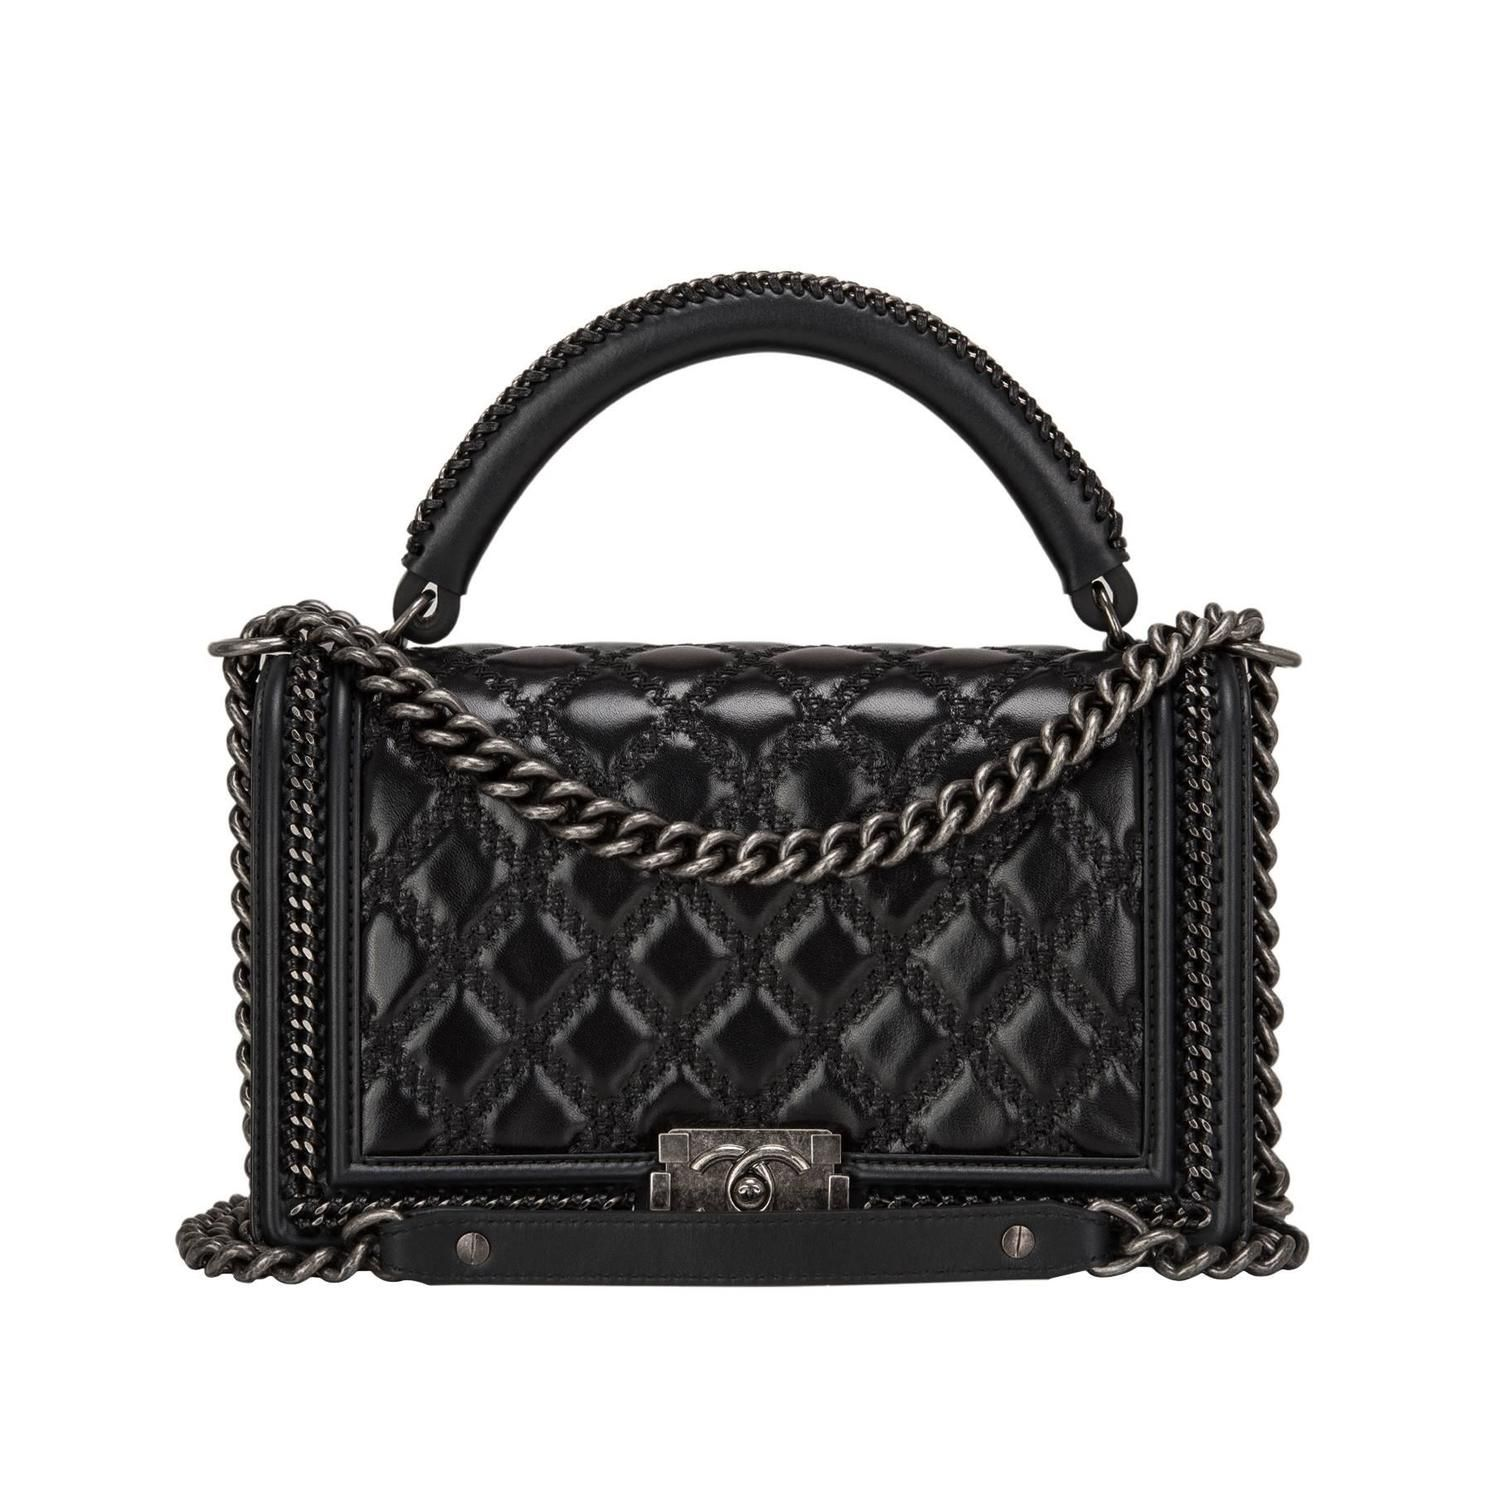 a557a9ce180f Chanel Black Quilted Shiny Goatskin New Medium Boy Bag With Top Handle